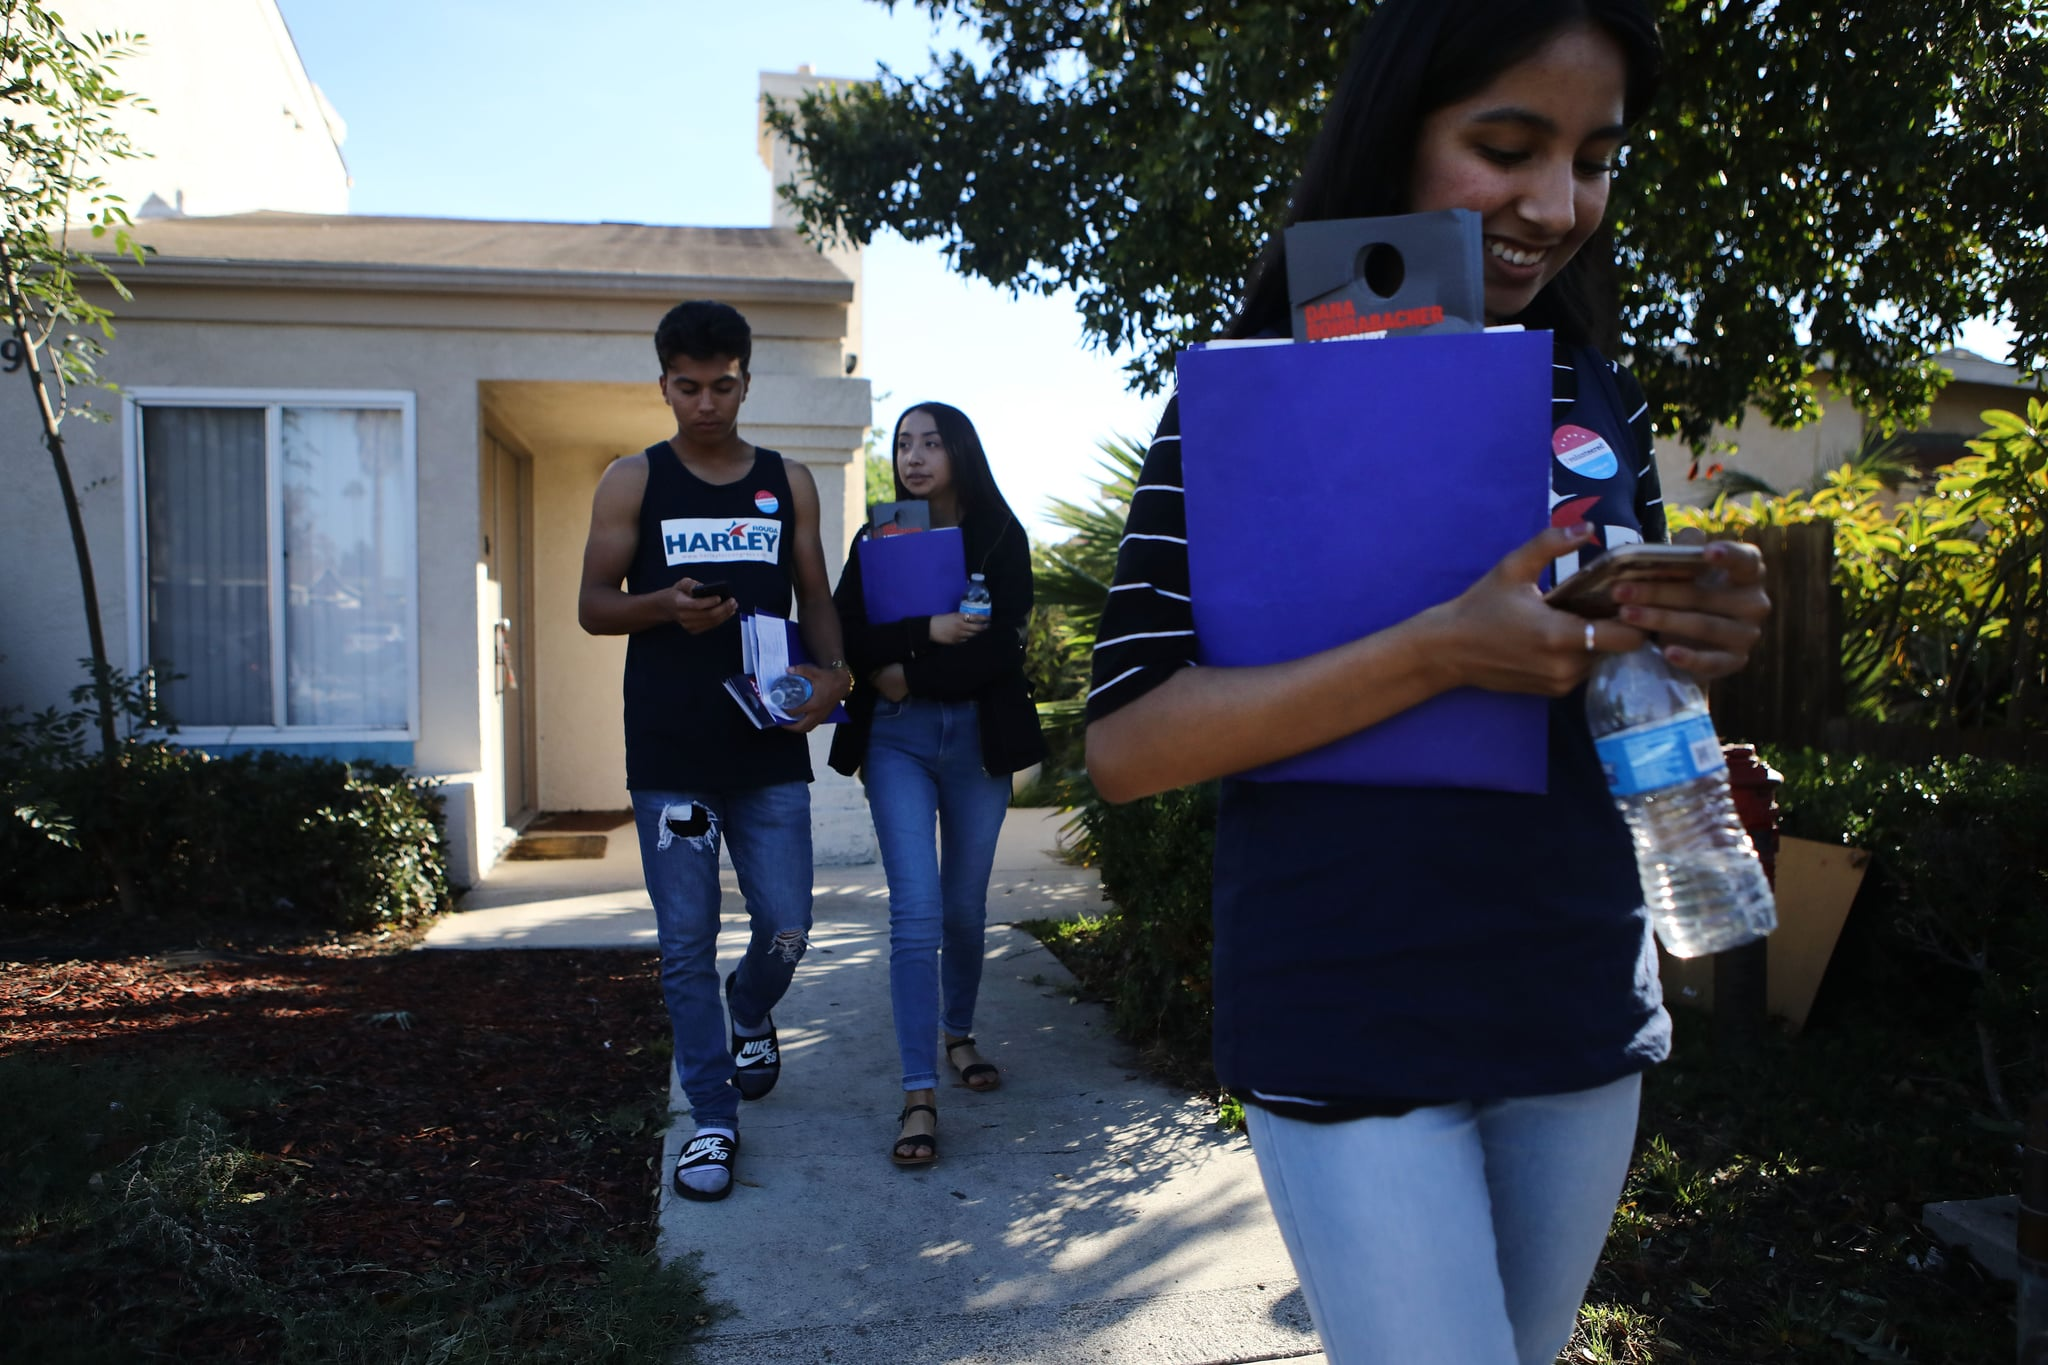 COSTA MESA, CA - OCTOBER 20:  First-generation American volunteers canvass for Democratic congressional candidate Harley Rouda (CA-48) on October 20, 2018 in Costa Mesa, California. They said they are canvassing because their parents are not allowed to vote in the election due to lack of citizenship. Rouda is competing for the seat against Republican incumbent Rep. Dana Rohrabacher. Democrats are targeting seven congressional seats in California, currently held by Republicans, where Hillary Clinton won in the 2016 presidential election. These districts have become the centrepiece of their strategy to flip the House and represent nearly one-third of the 23 seats needed for the Democrats to take control of the chamber in the November 6 mid term elections.  (Photo by Mario Tama/Getty Images)